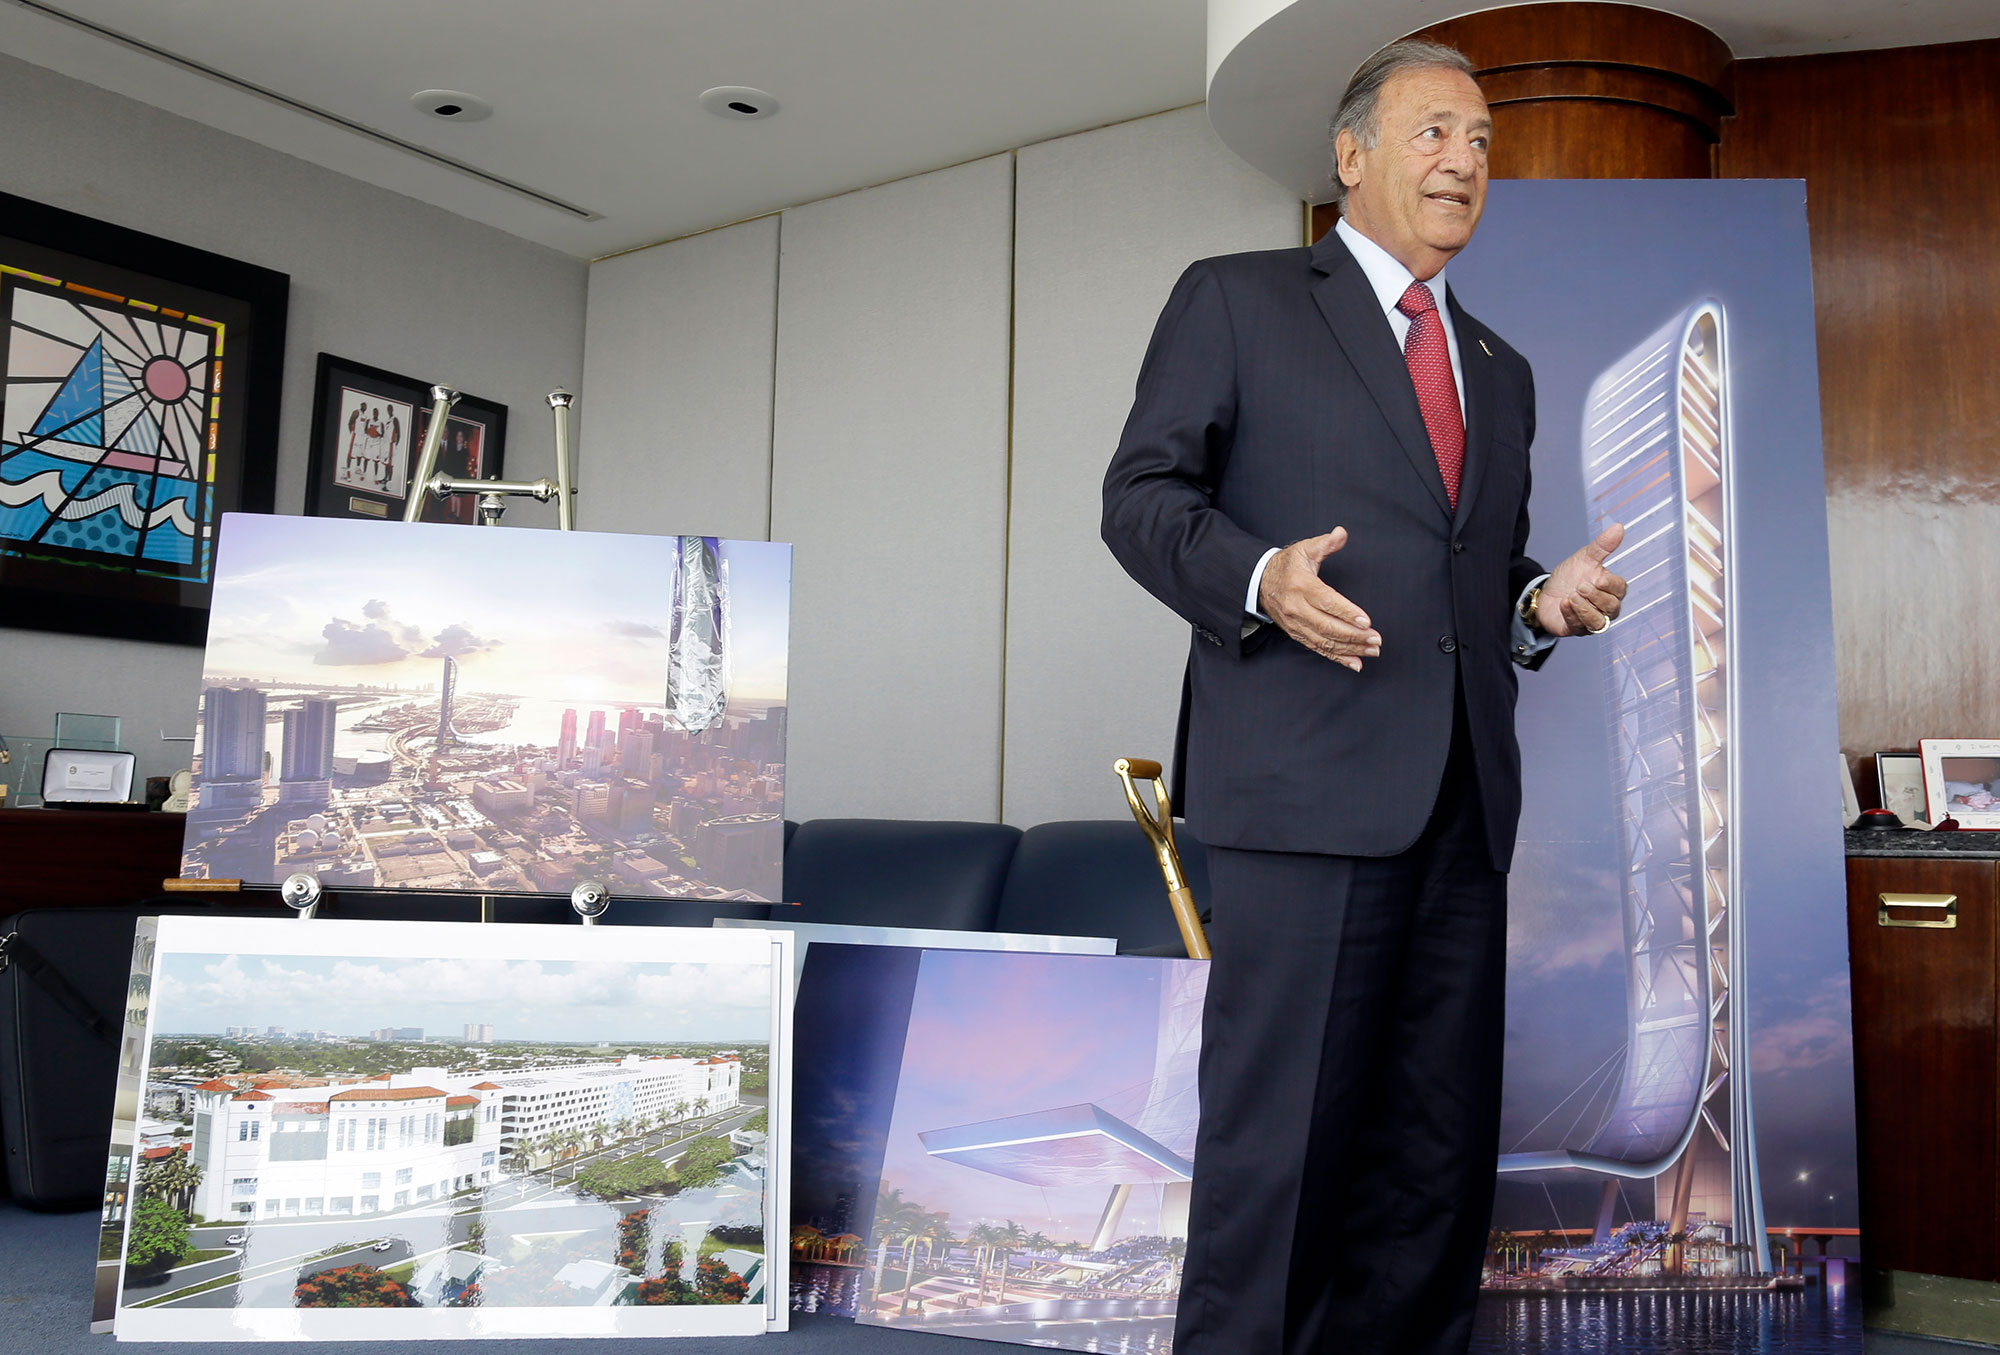 SkyRise Miami, a real estate project in Miami, will get 63% of its funding from EB-5 investors.